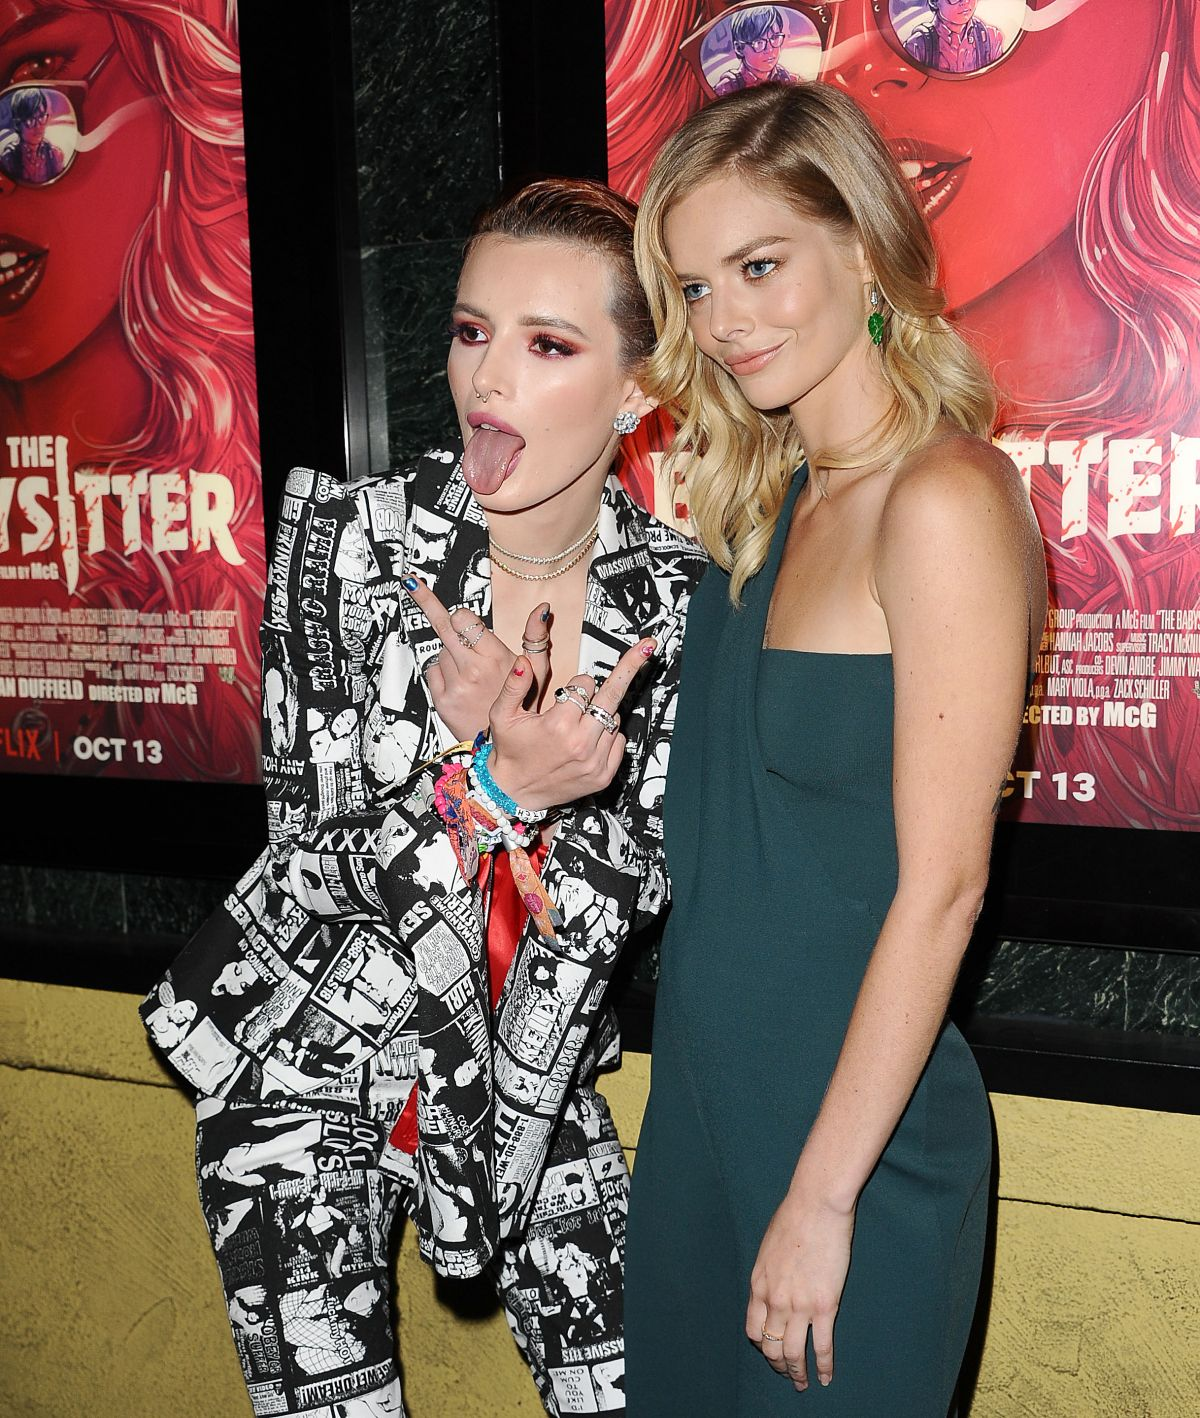 bella-thorne-at-the-babysitter-premiere-in-los-angeles-10-11-2017-1.jpg